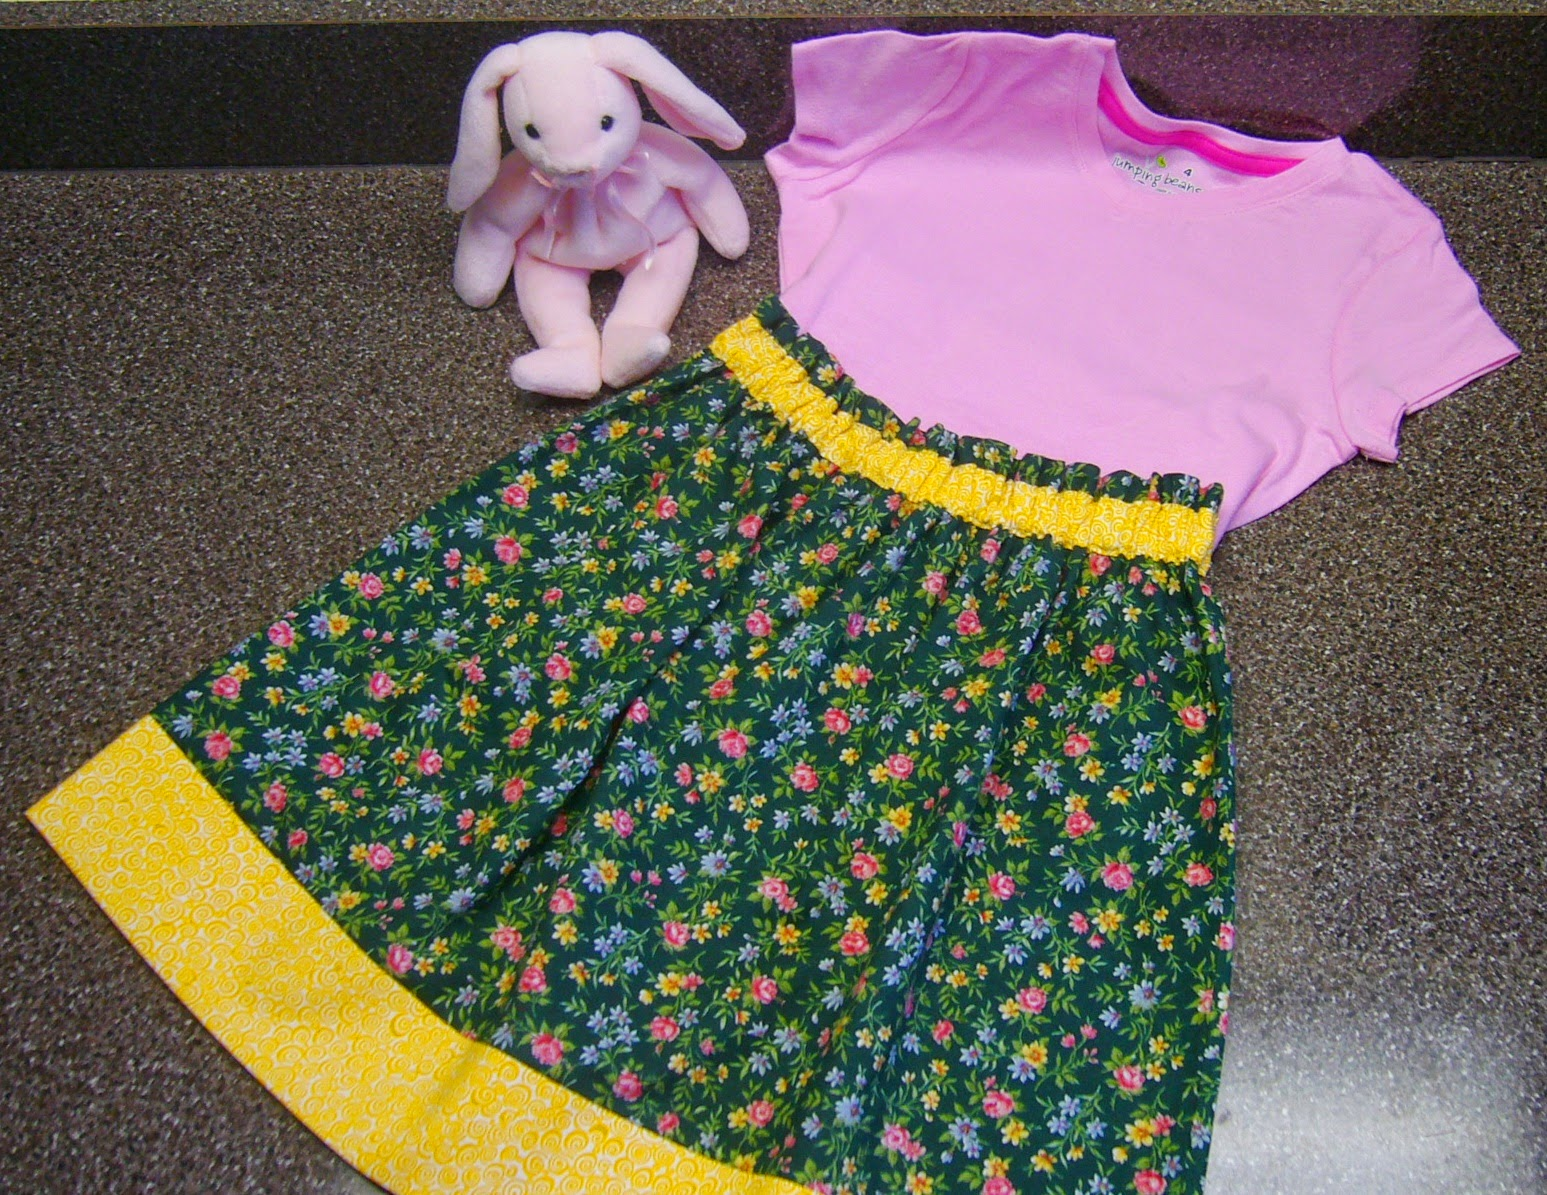 Handmade skirt for an Operation Christmas Child shoebox.